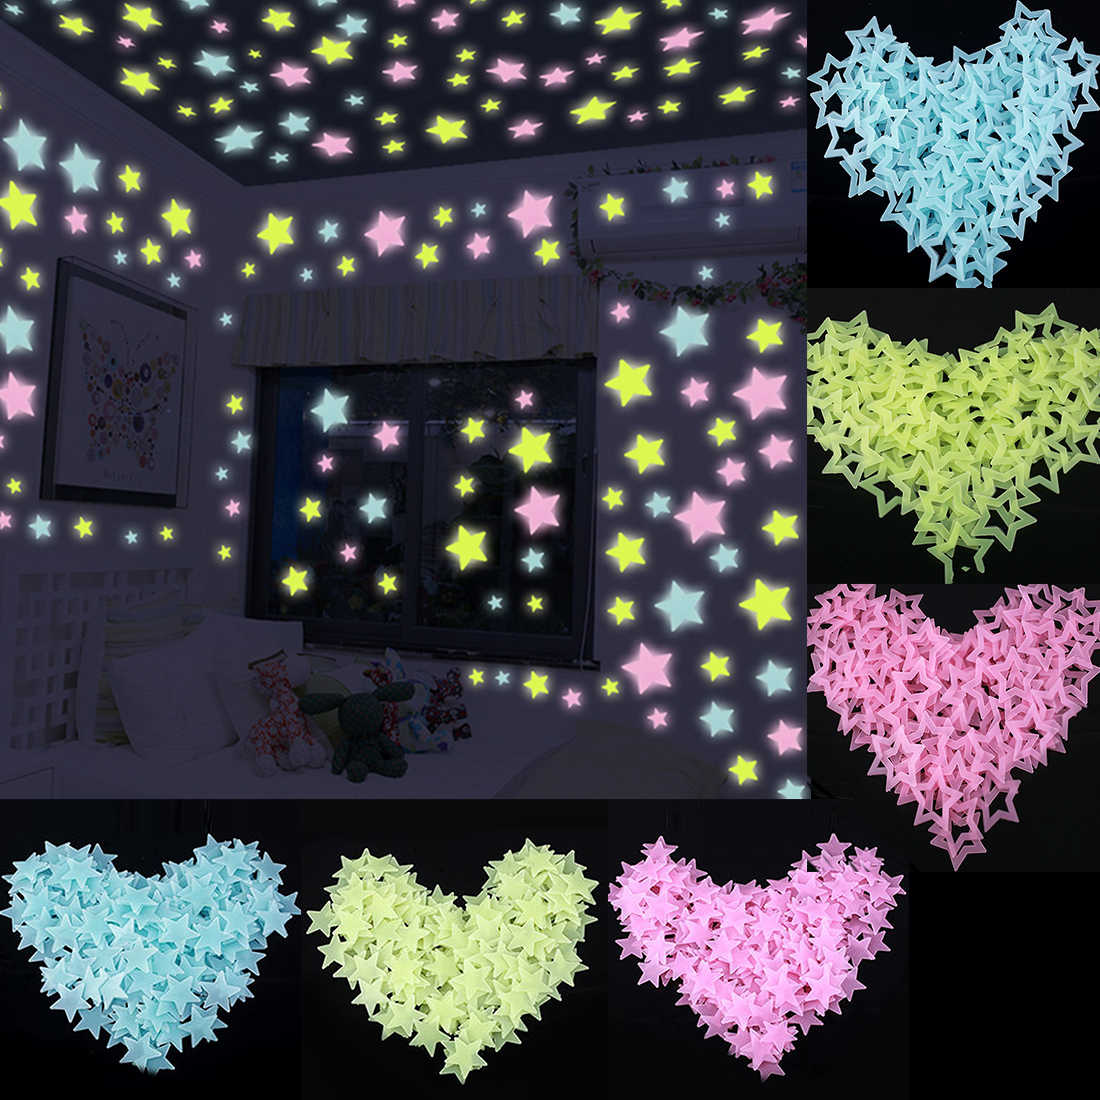 100PCS//Bag 3D Stars Glow in The Dark Wall Stickers Luminous Fluorescent Wall Stickers for Kids Baby Room Bedroom